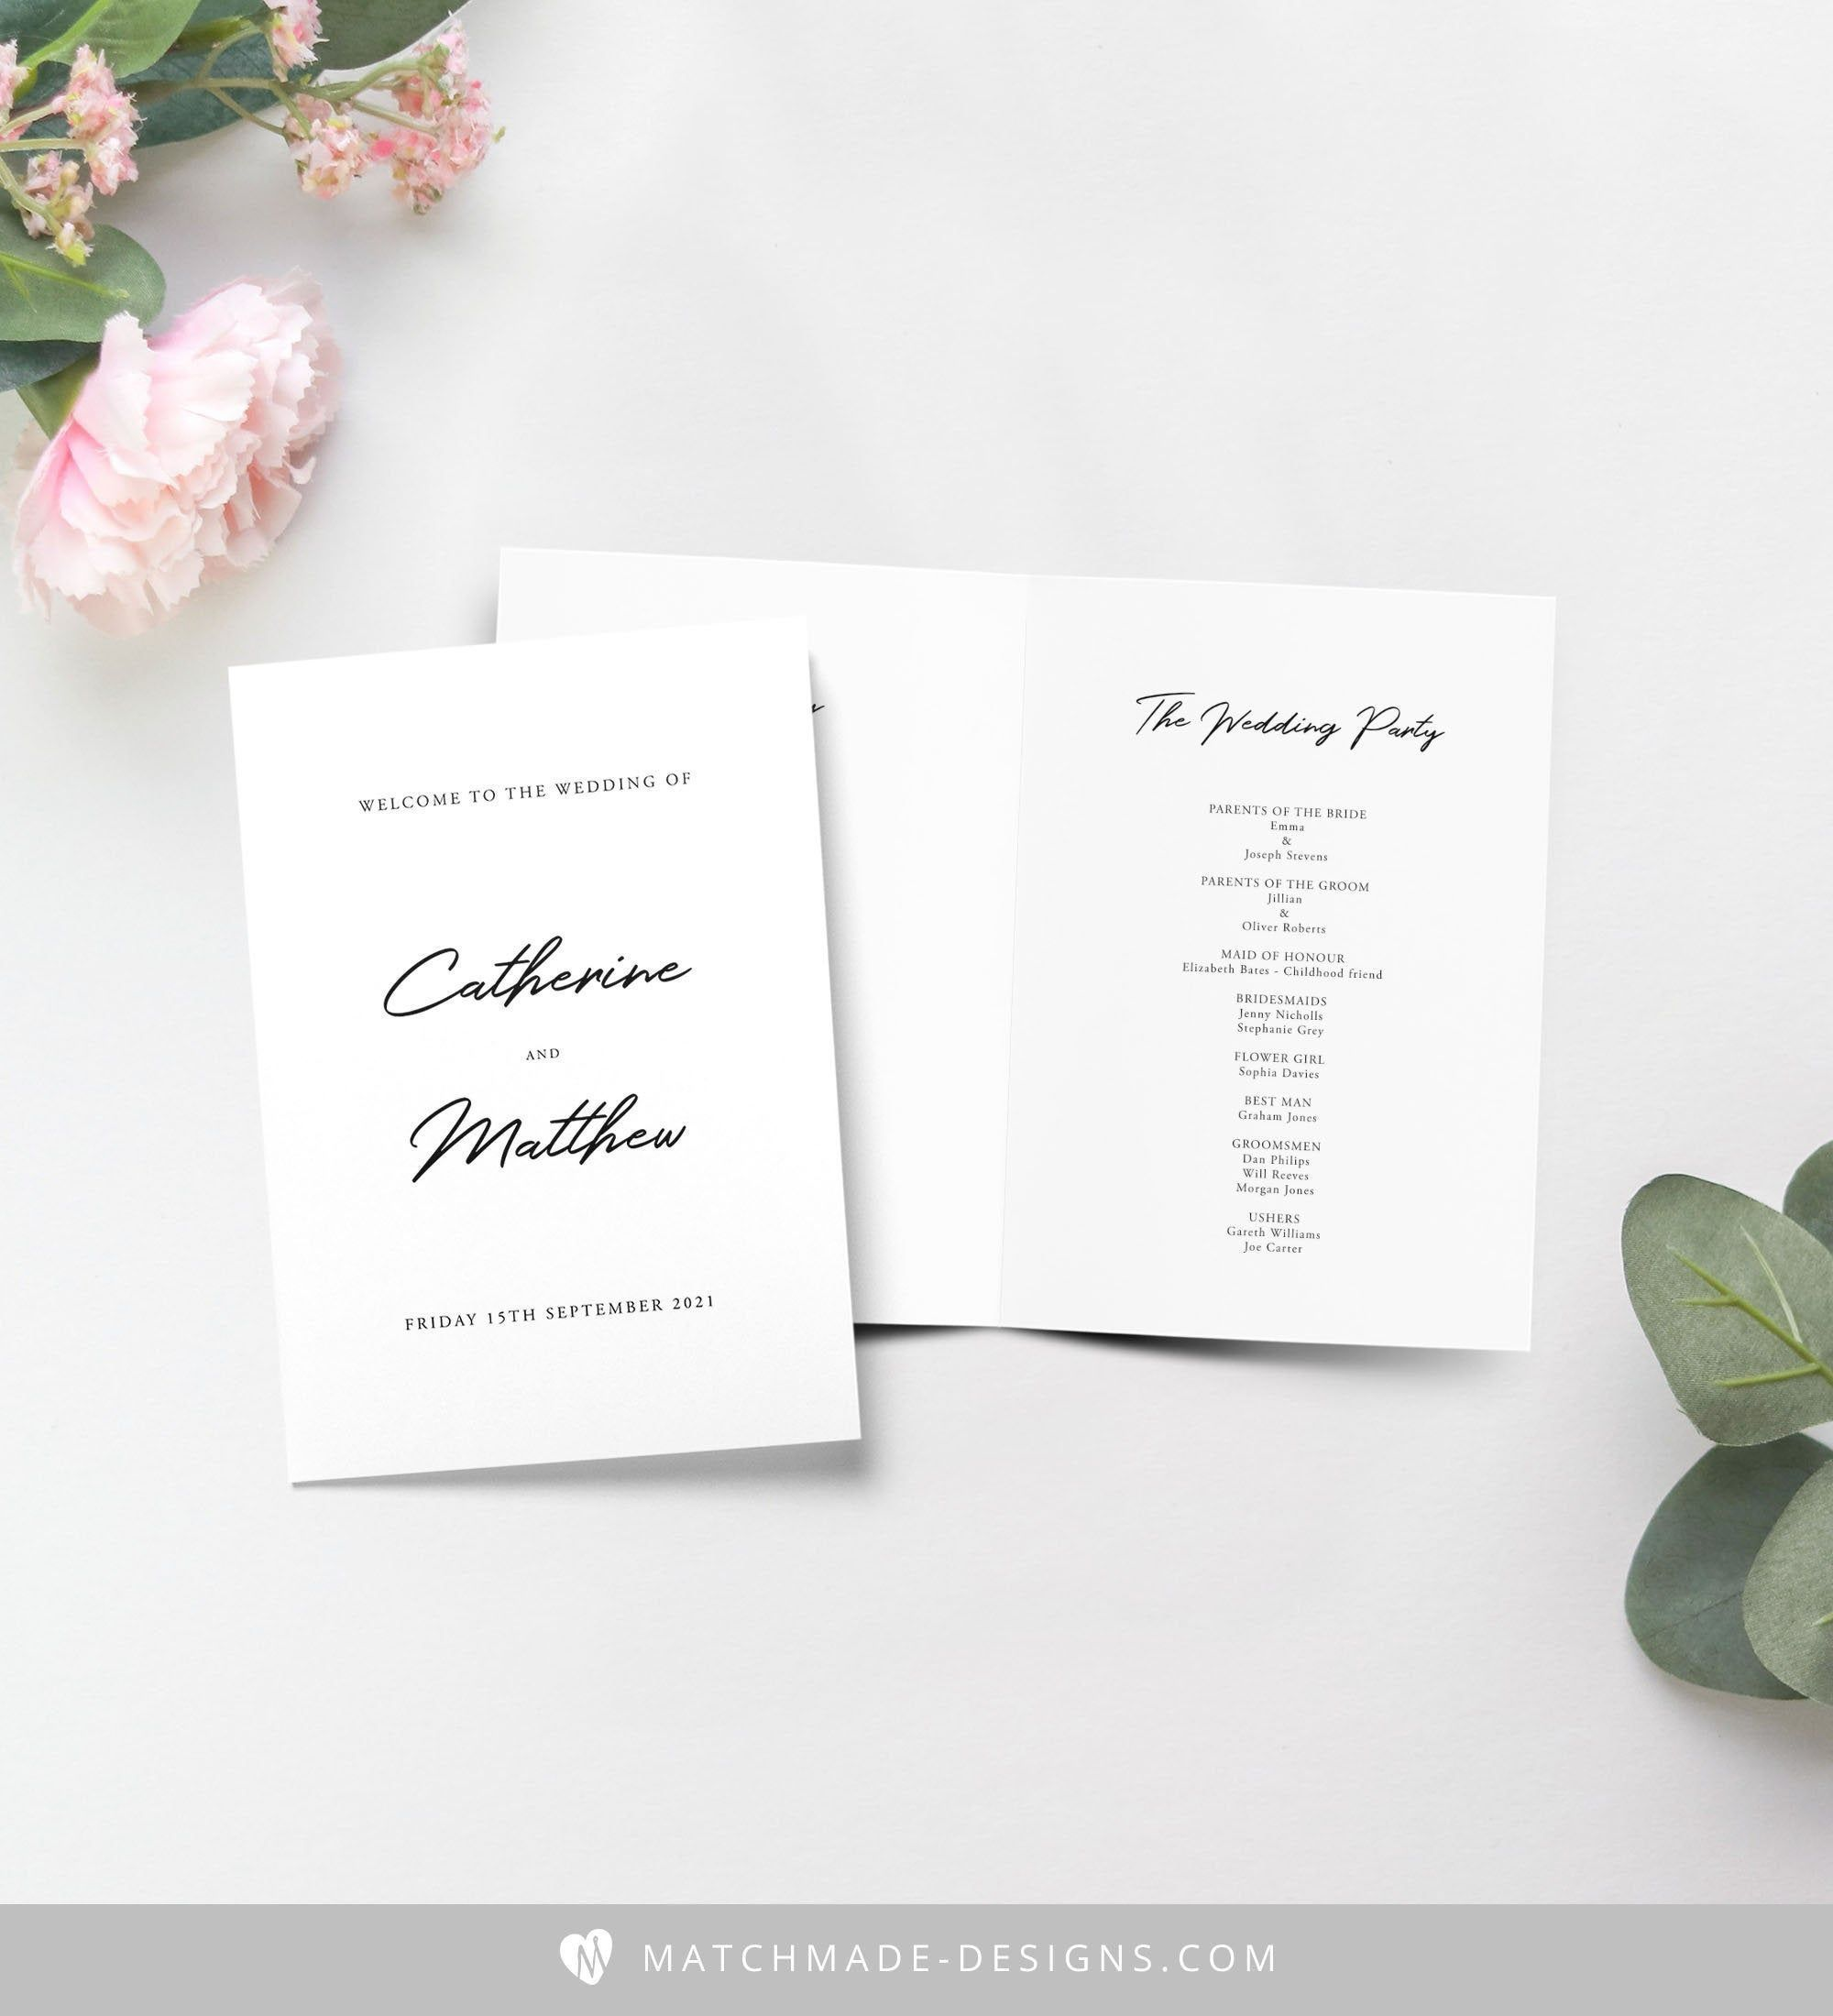 001 Dreaded Wedding Order Of Service Template Pdf Design Full